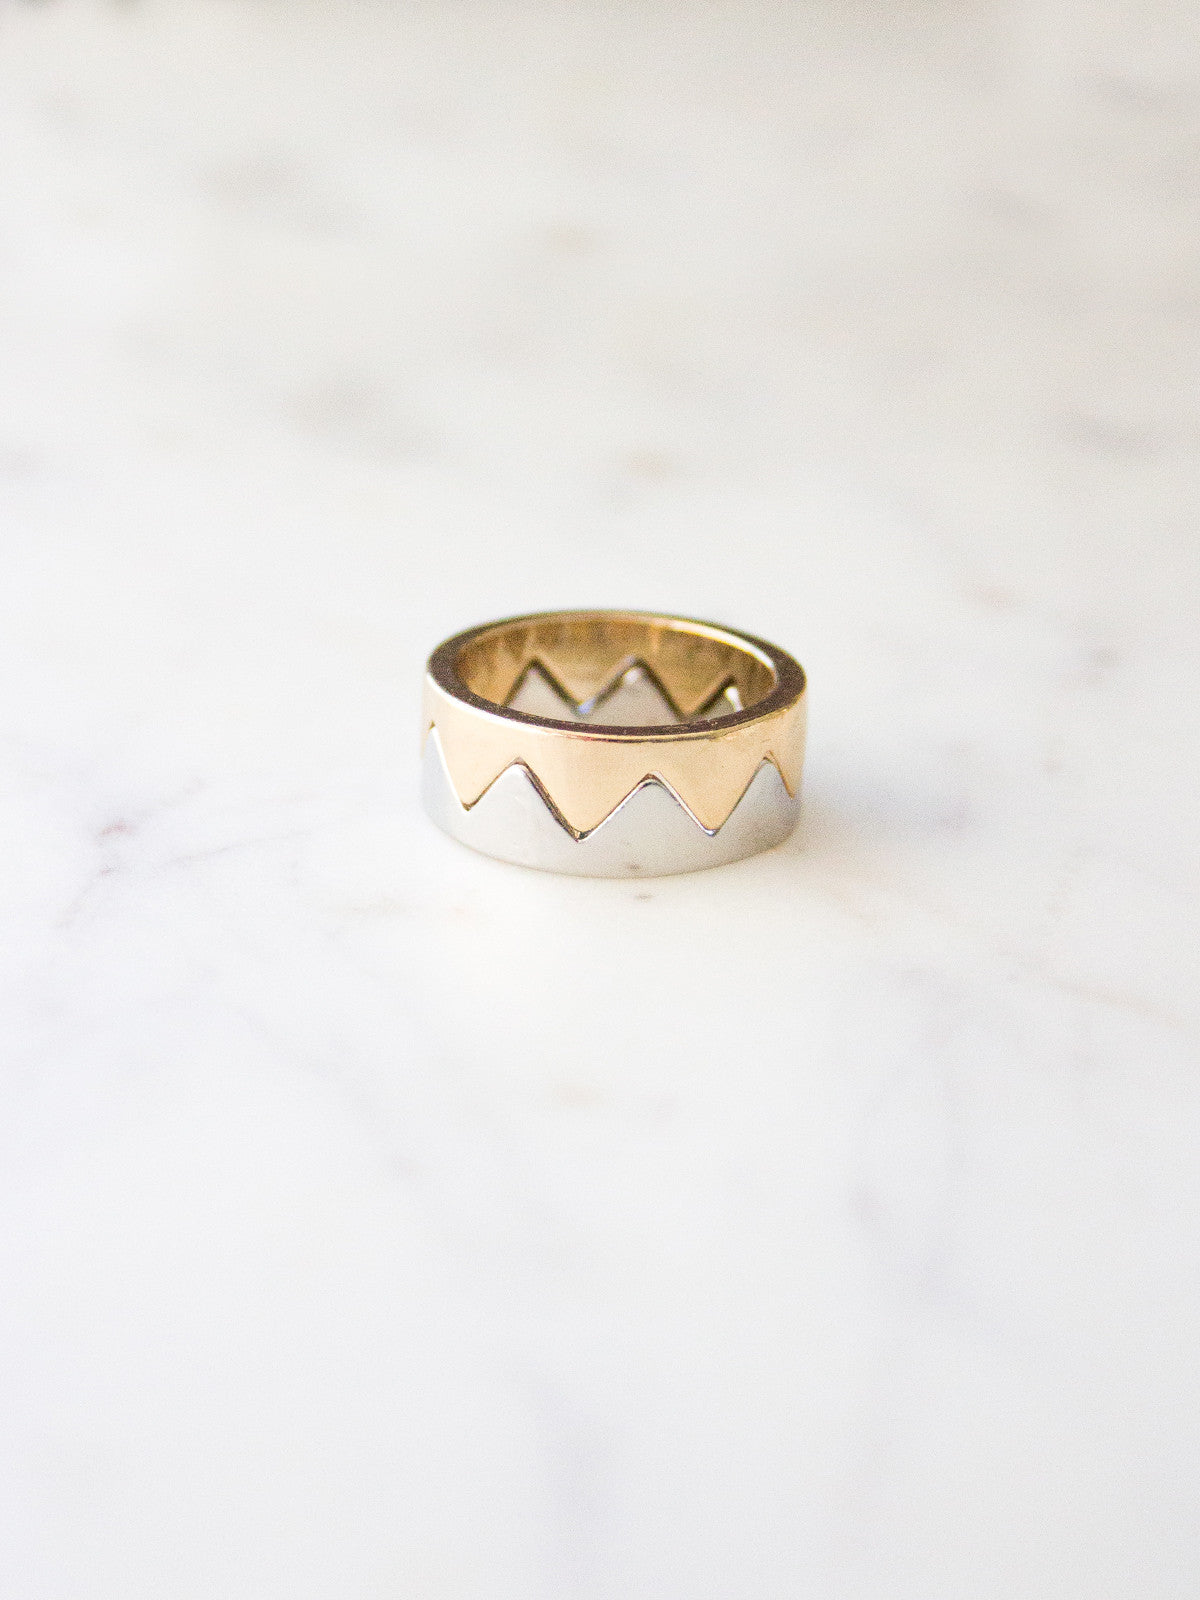 TELL ME YOU WANT ME 2 IN 1 GOLD & SILVER RING